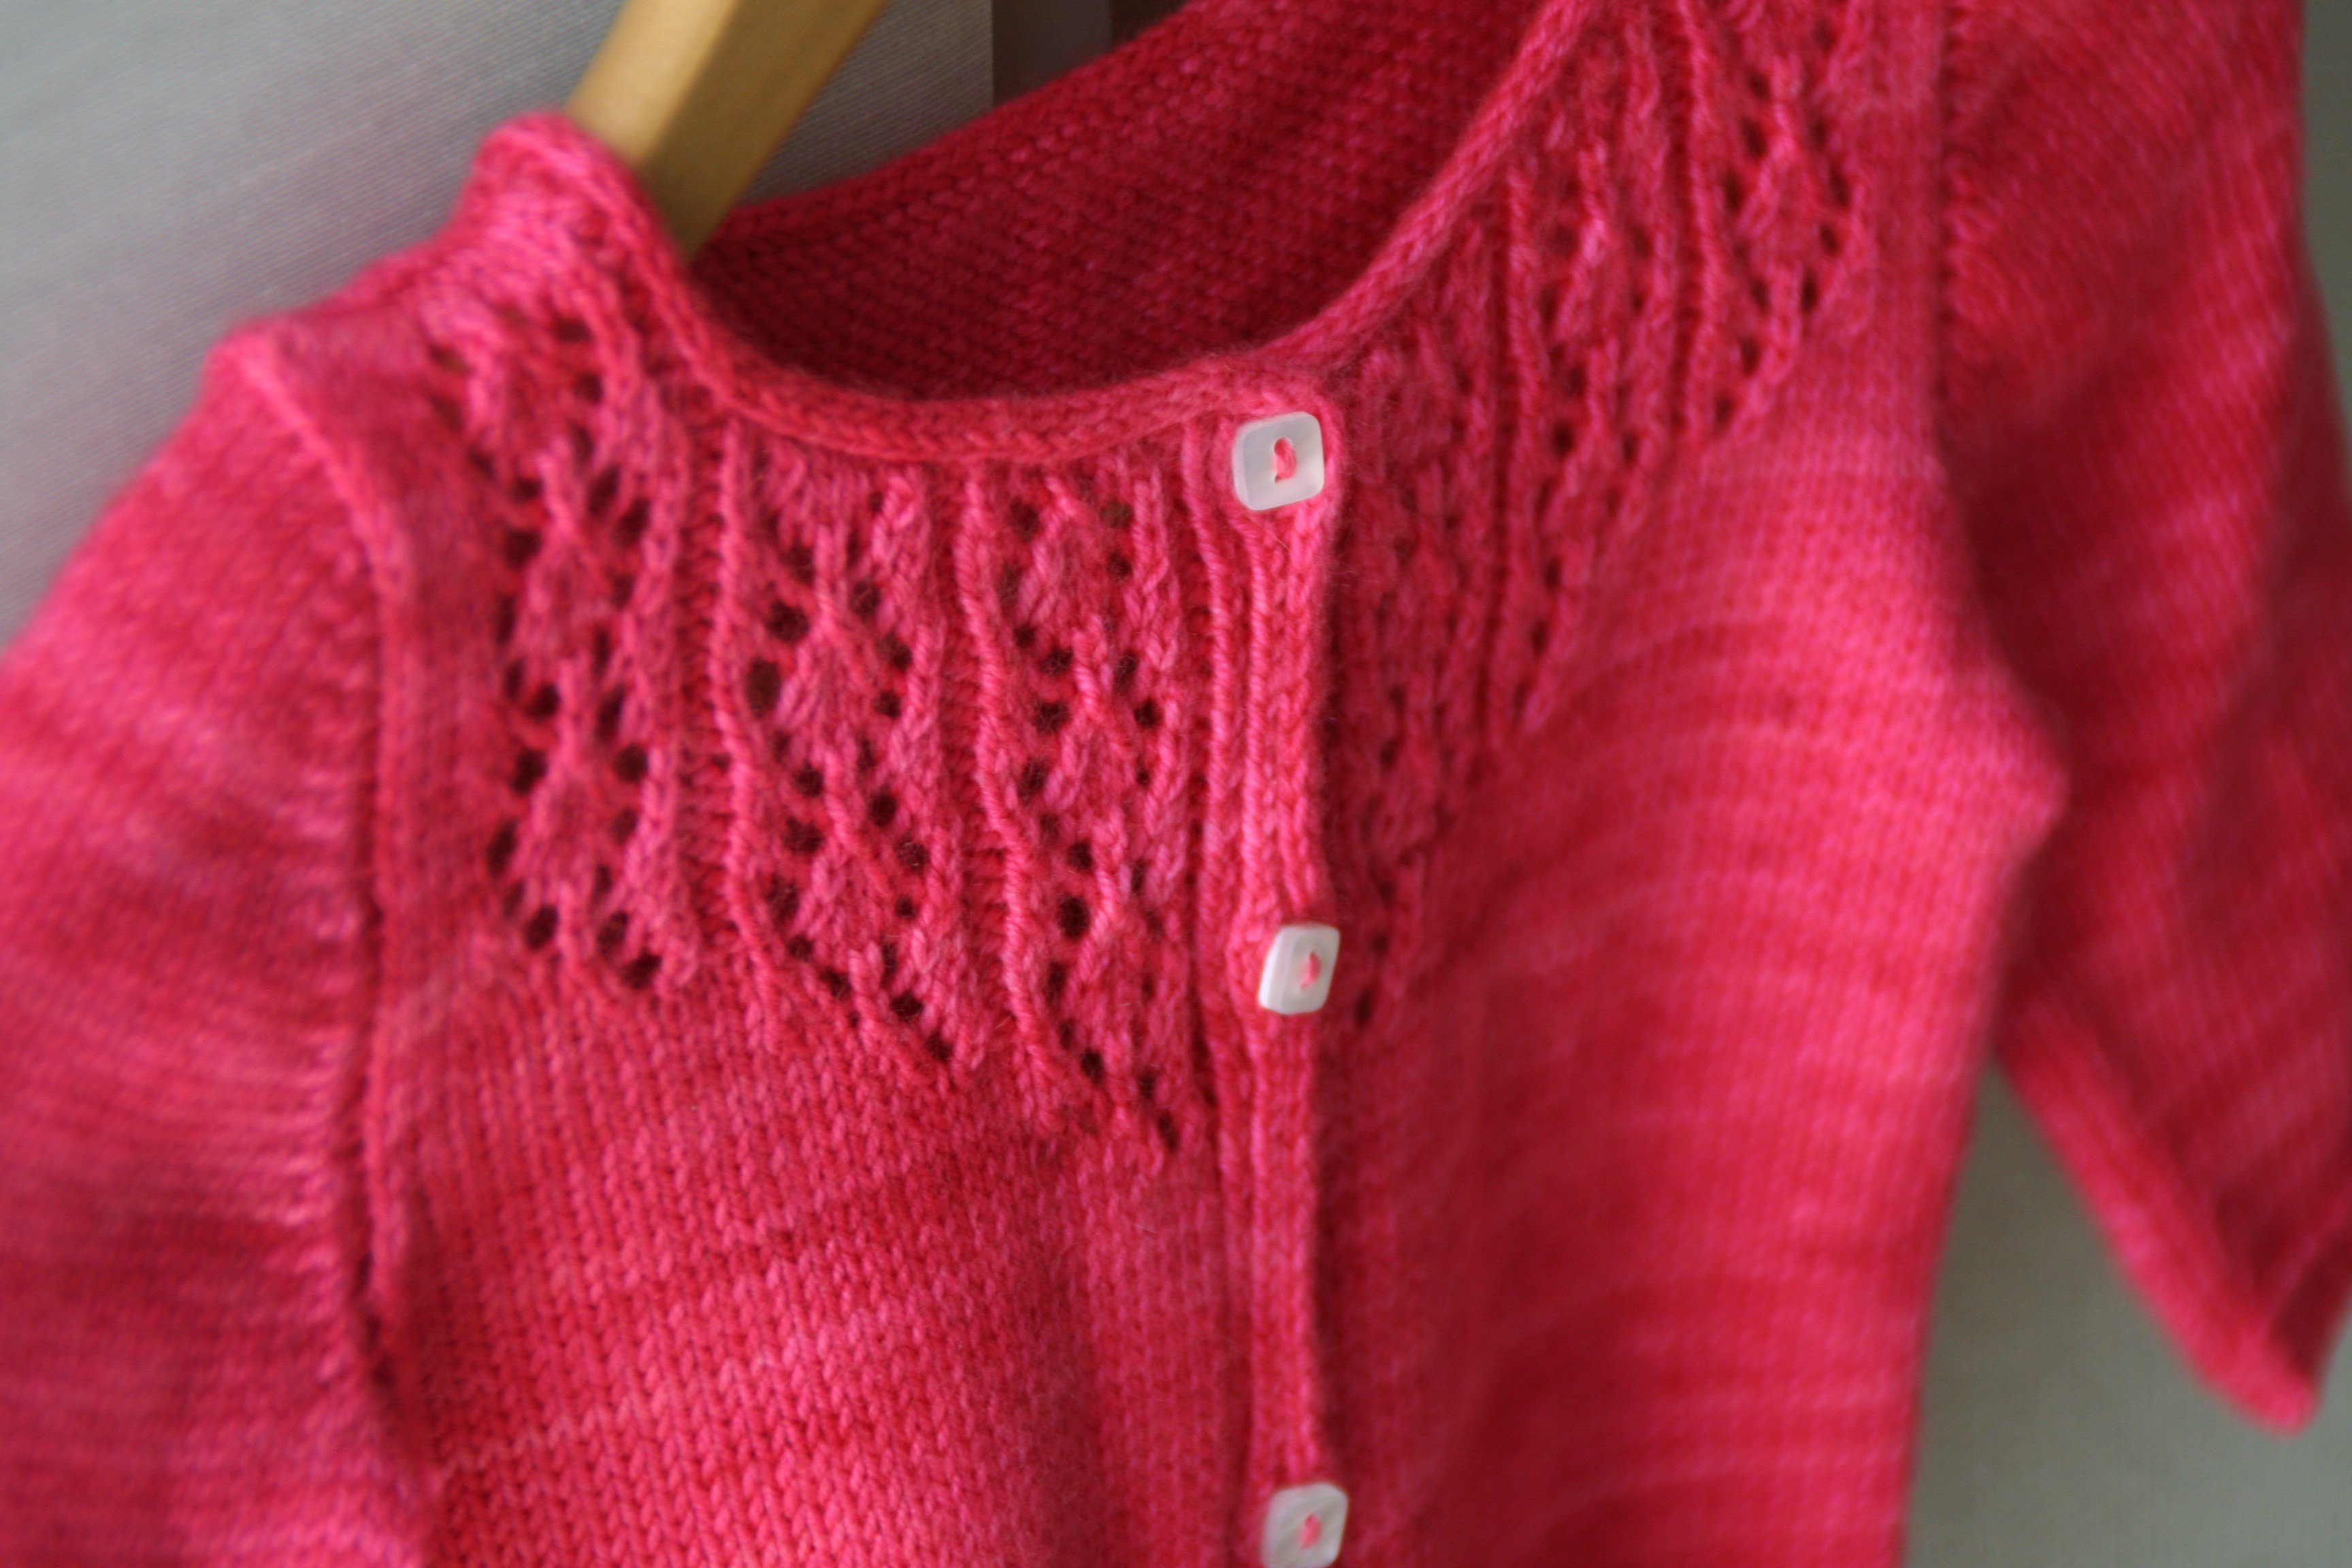 Little Trellis Child Cardigan Knitting Pattern